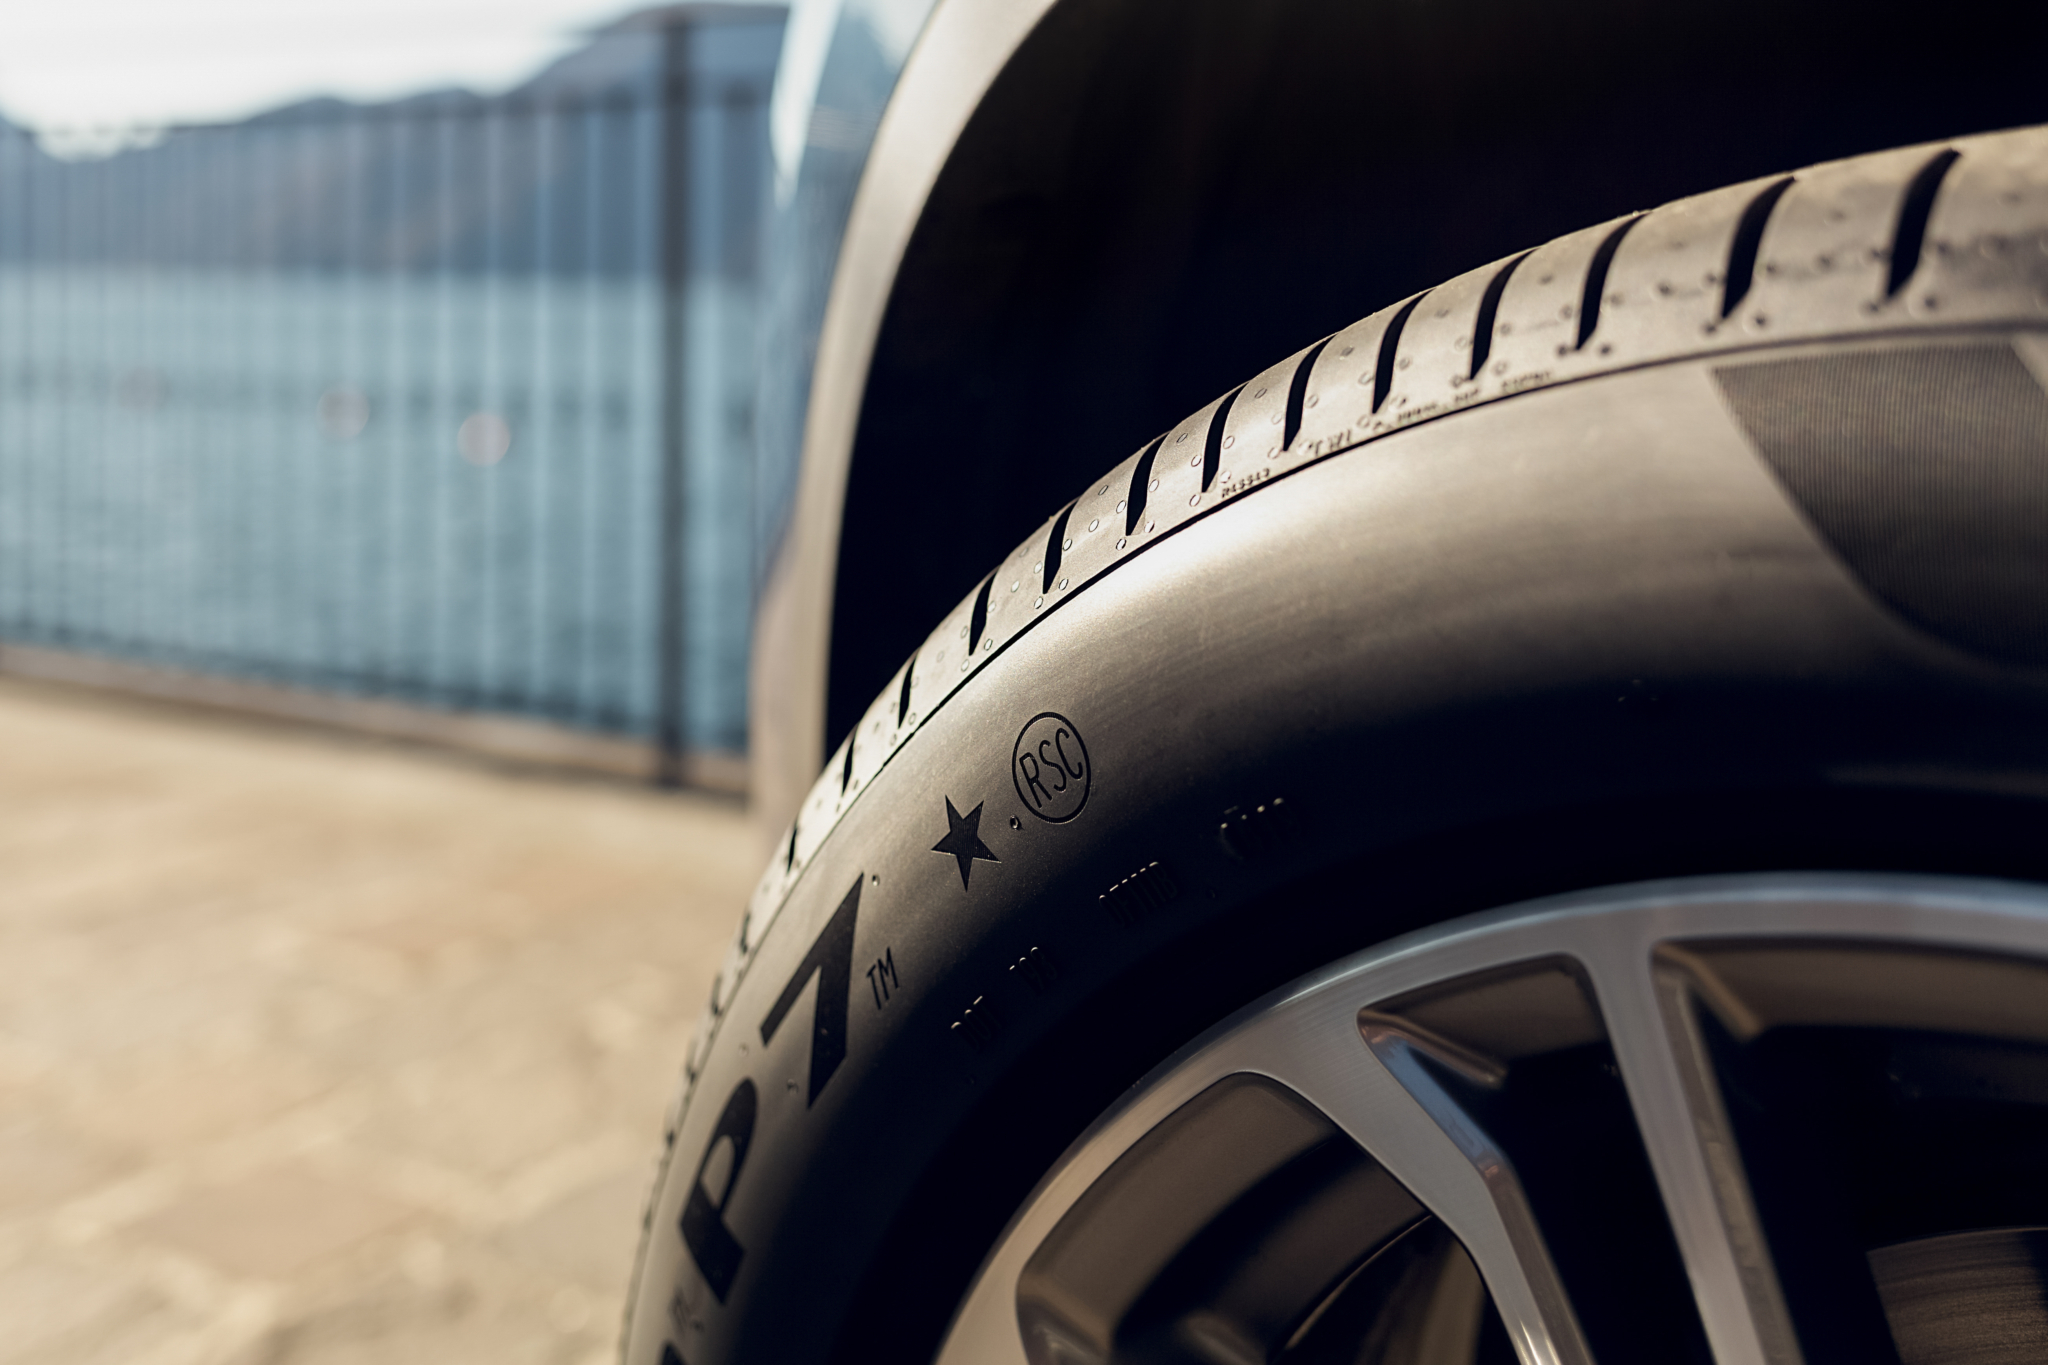 Pirelli: likely increase in car usage as motorists continue distancing